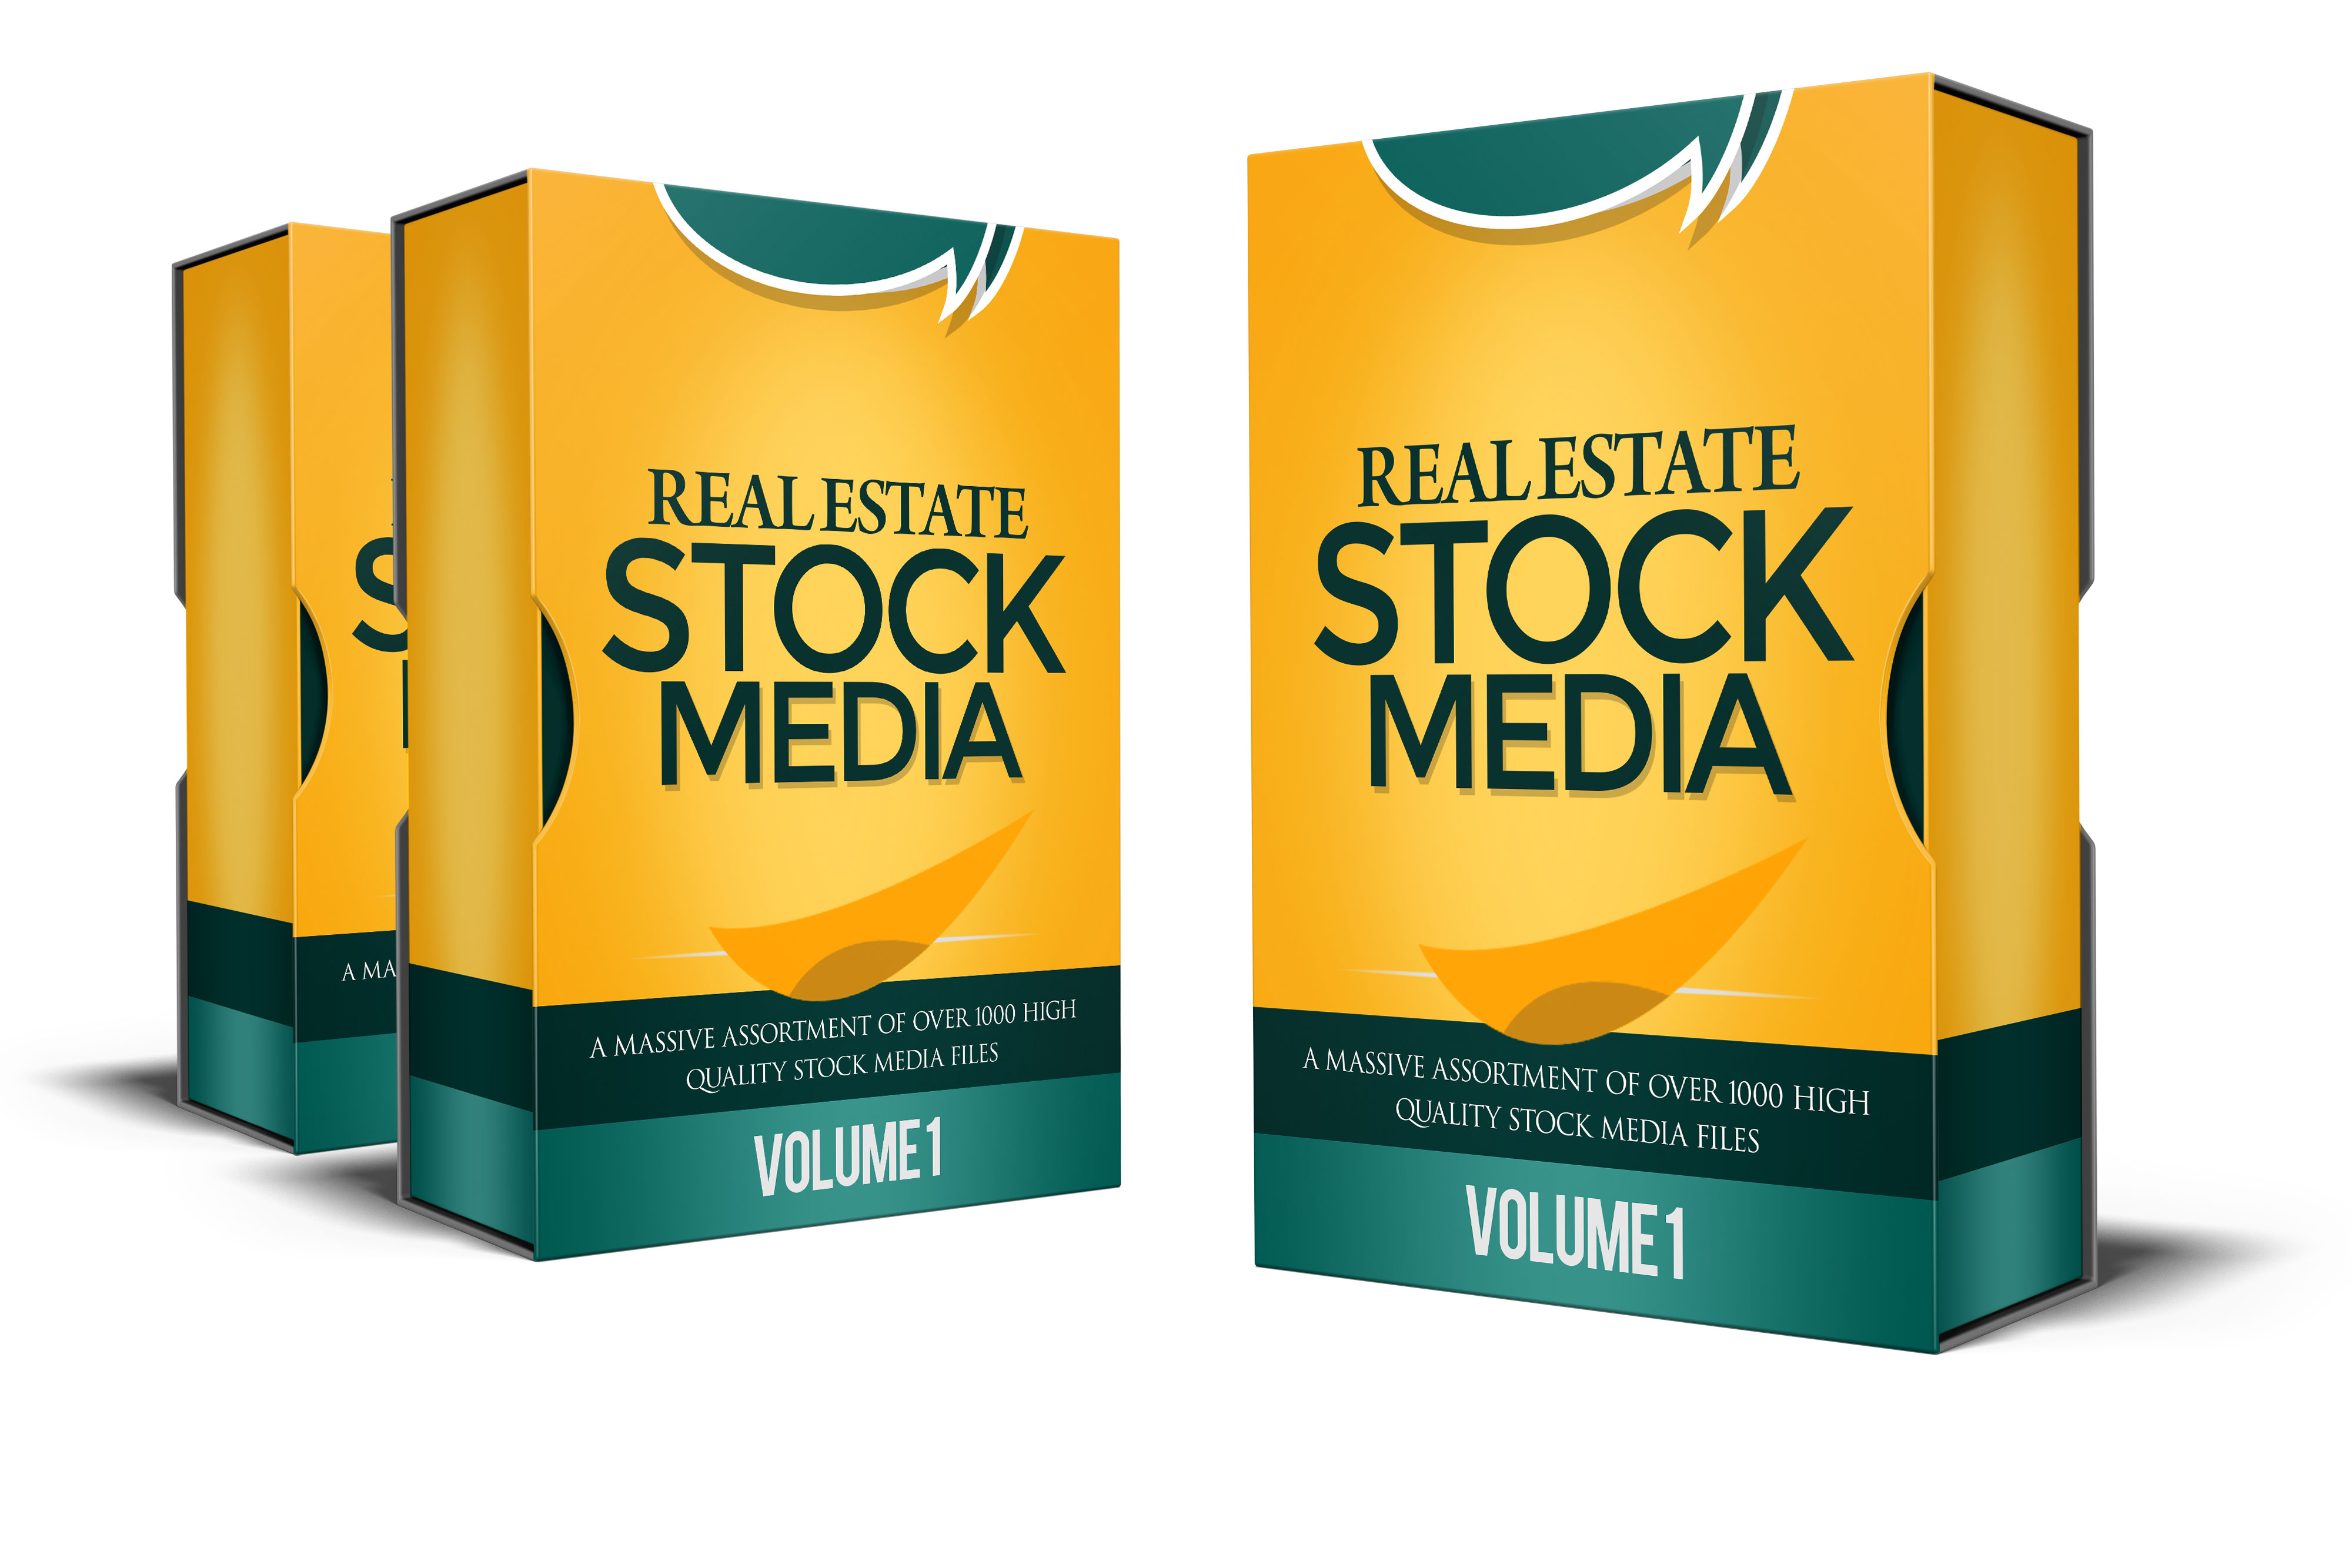 Real Estate Stock Media